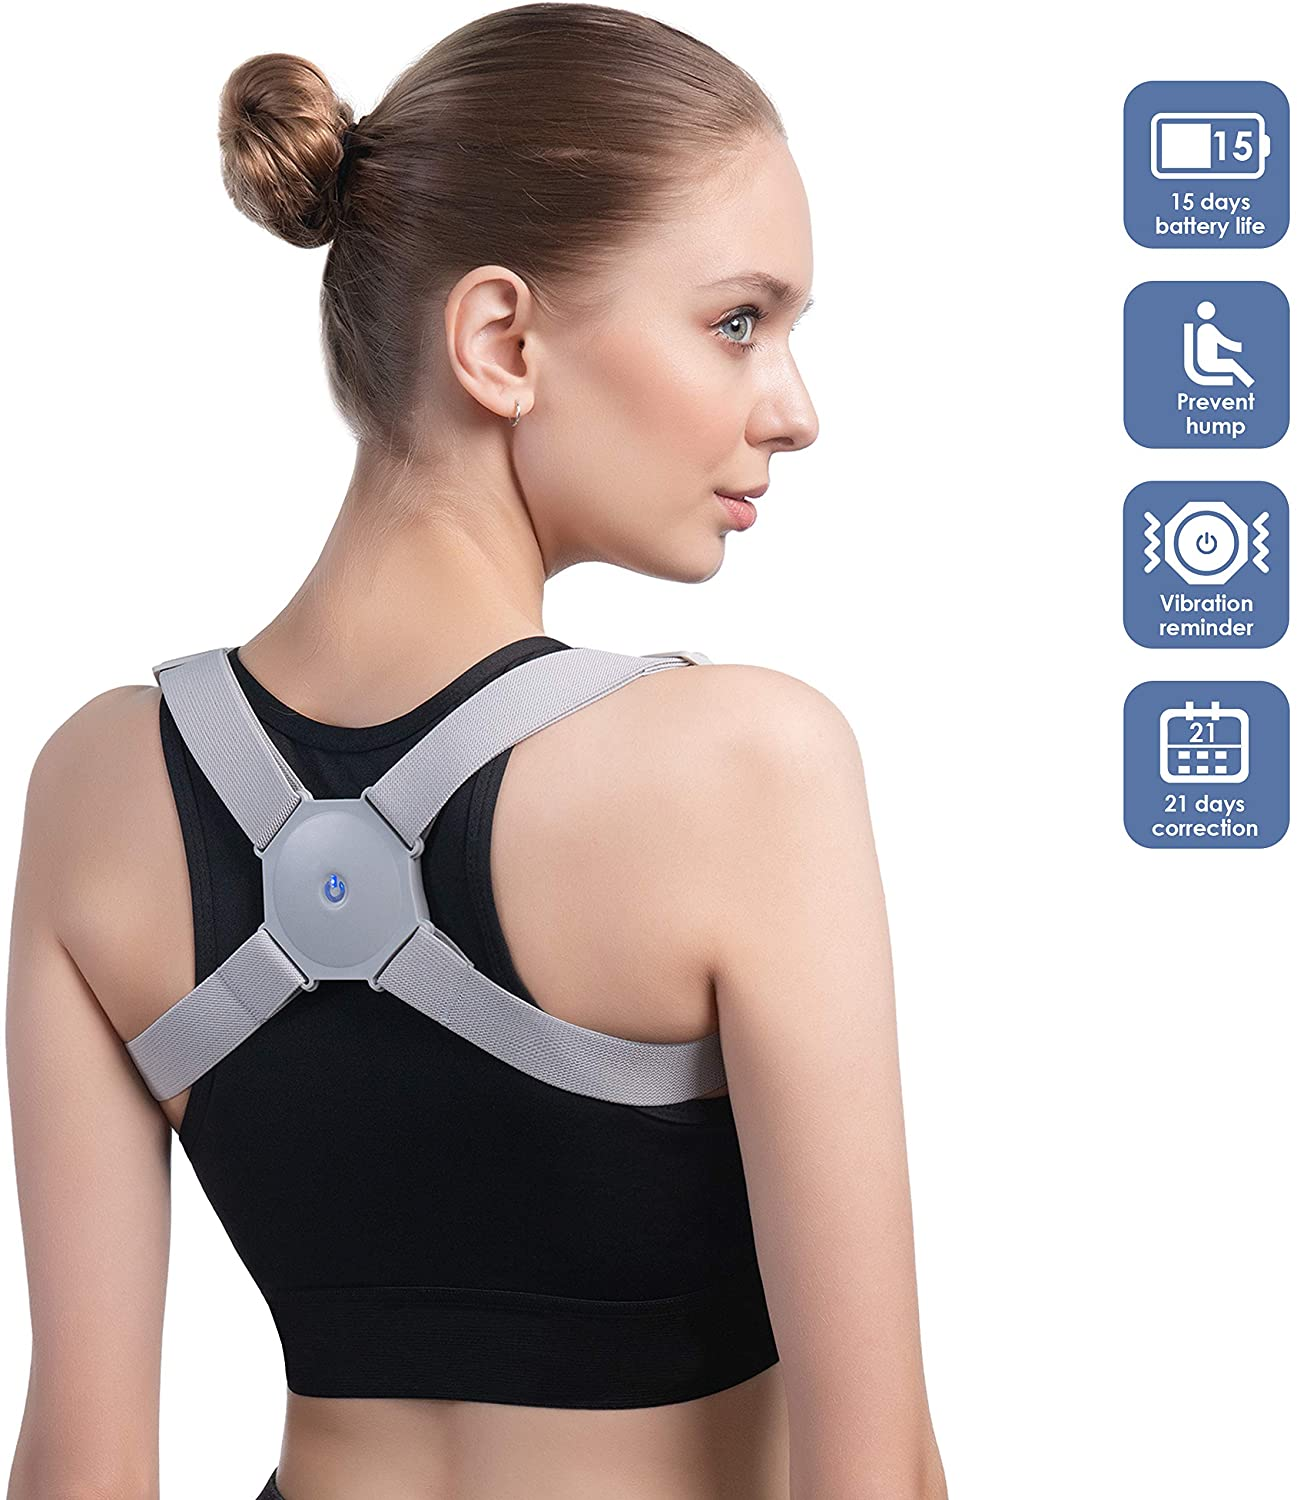 Unisex Automatic Posture Trainer and Posture Corrector